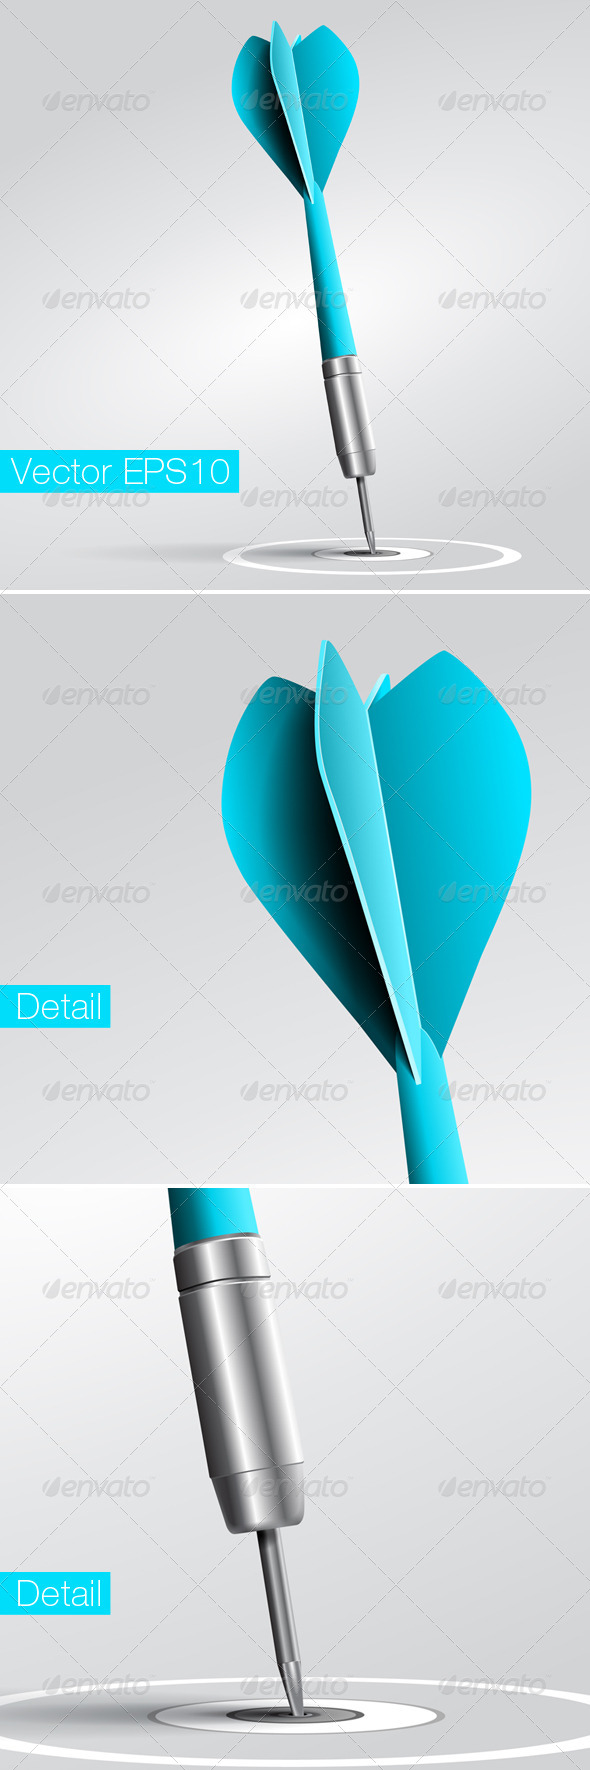 Vector Target and Dart, Excellence Concept. - Vectors